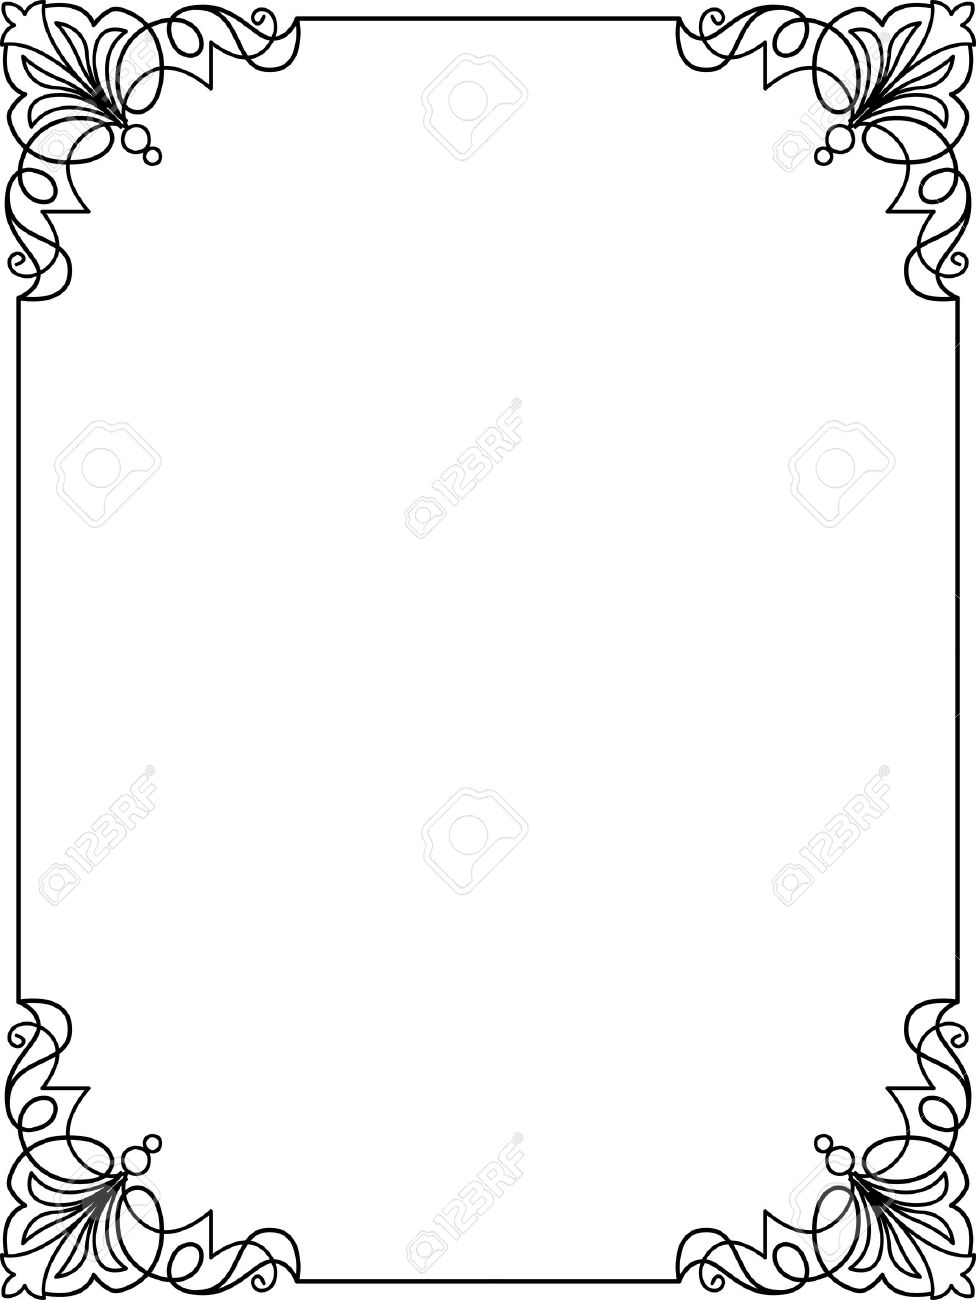 simple frame border design. Simple Lines, Border Frame, Vector Design Stock - 24306545 Frame P